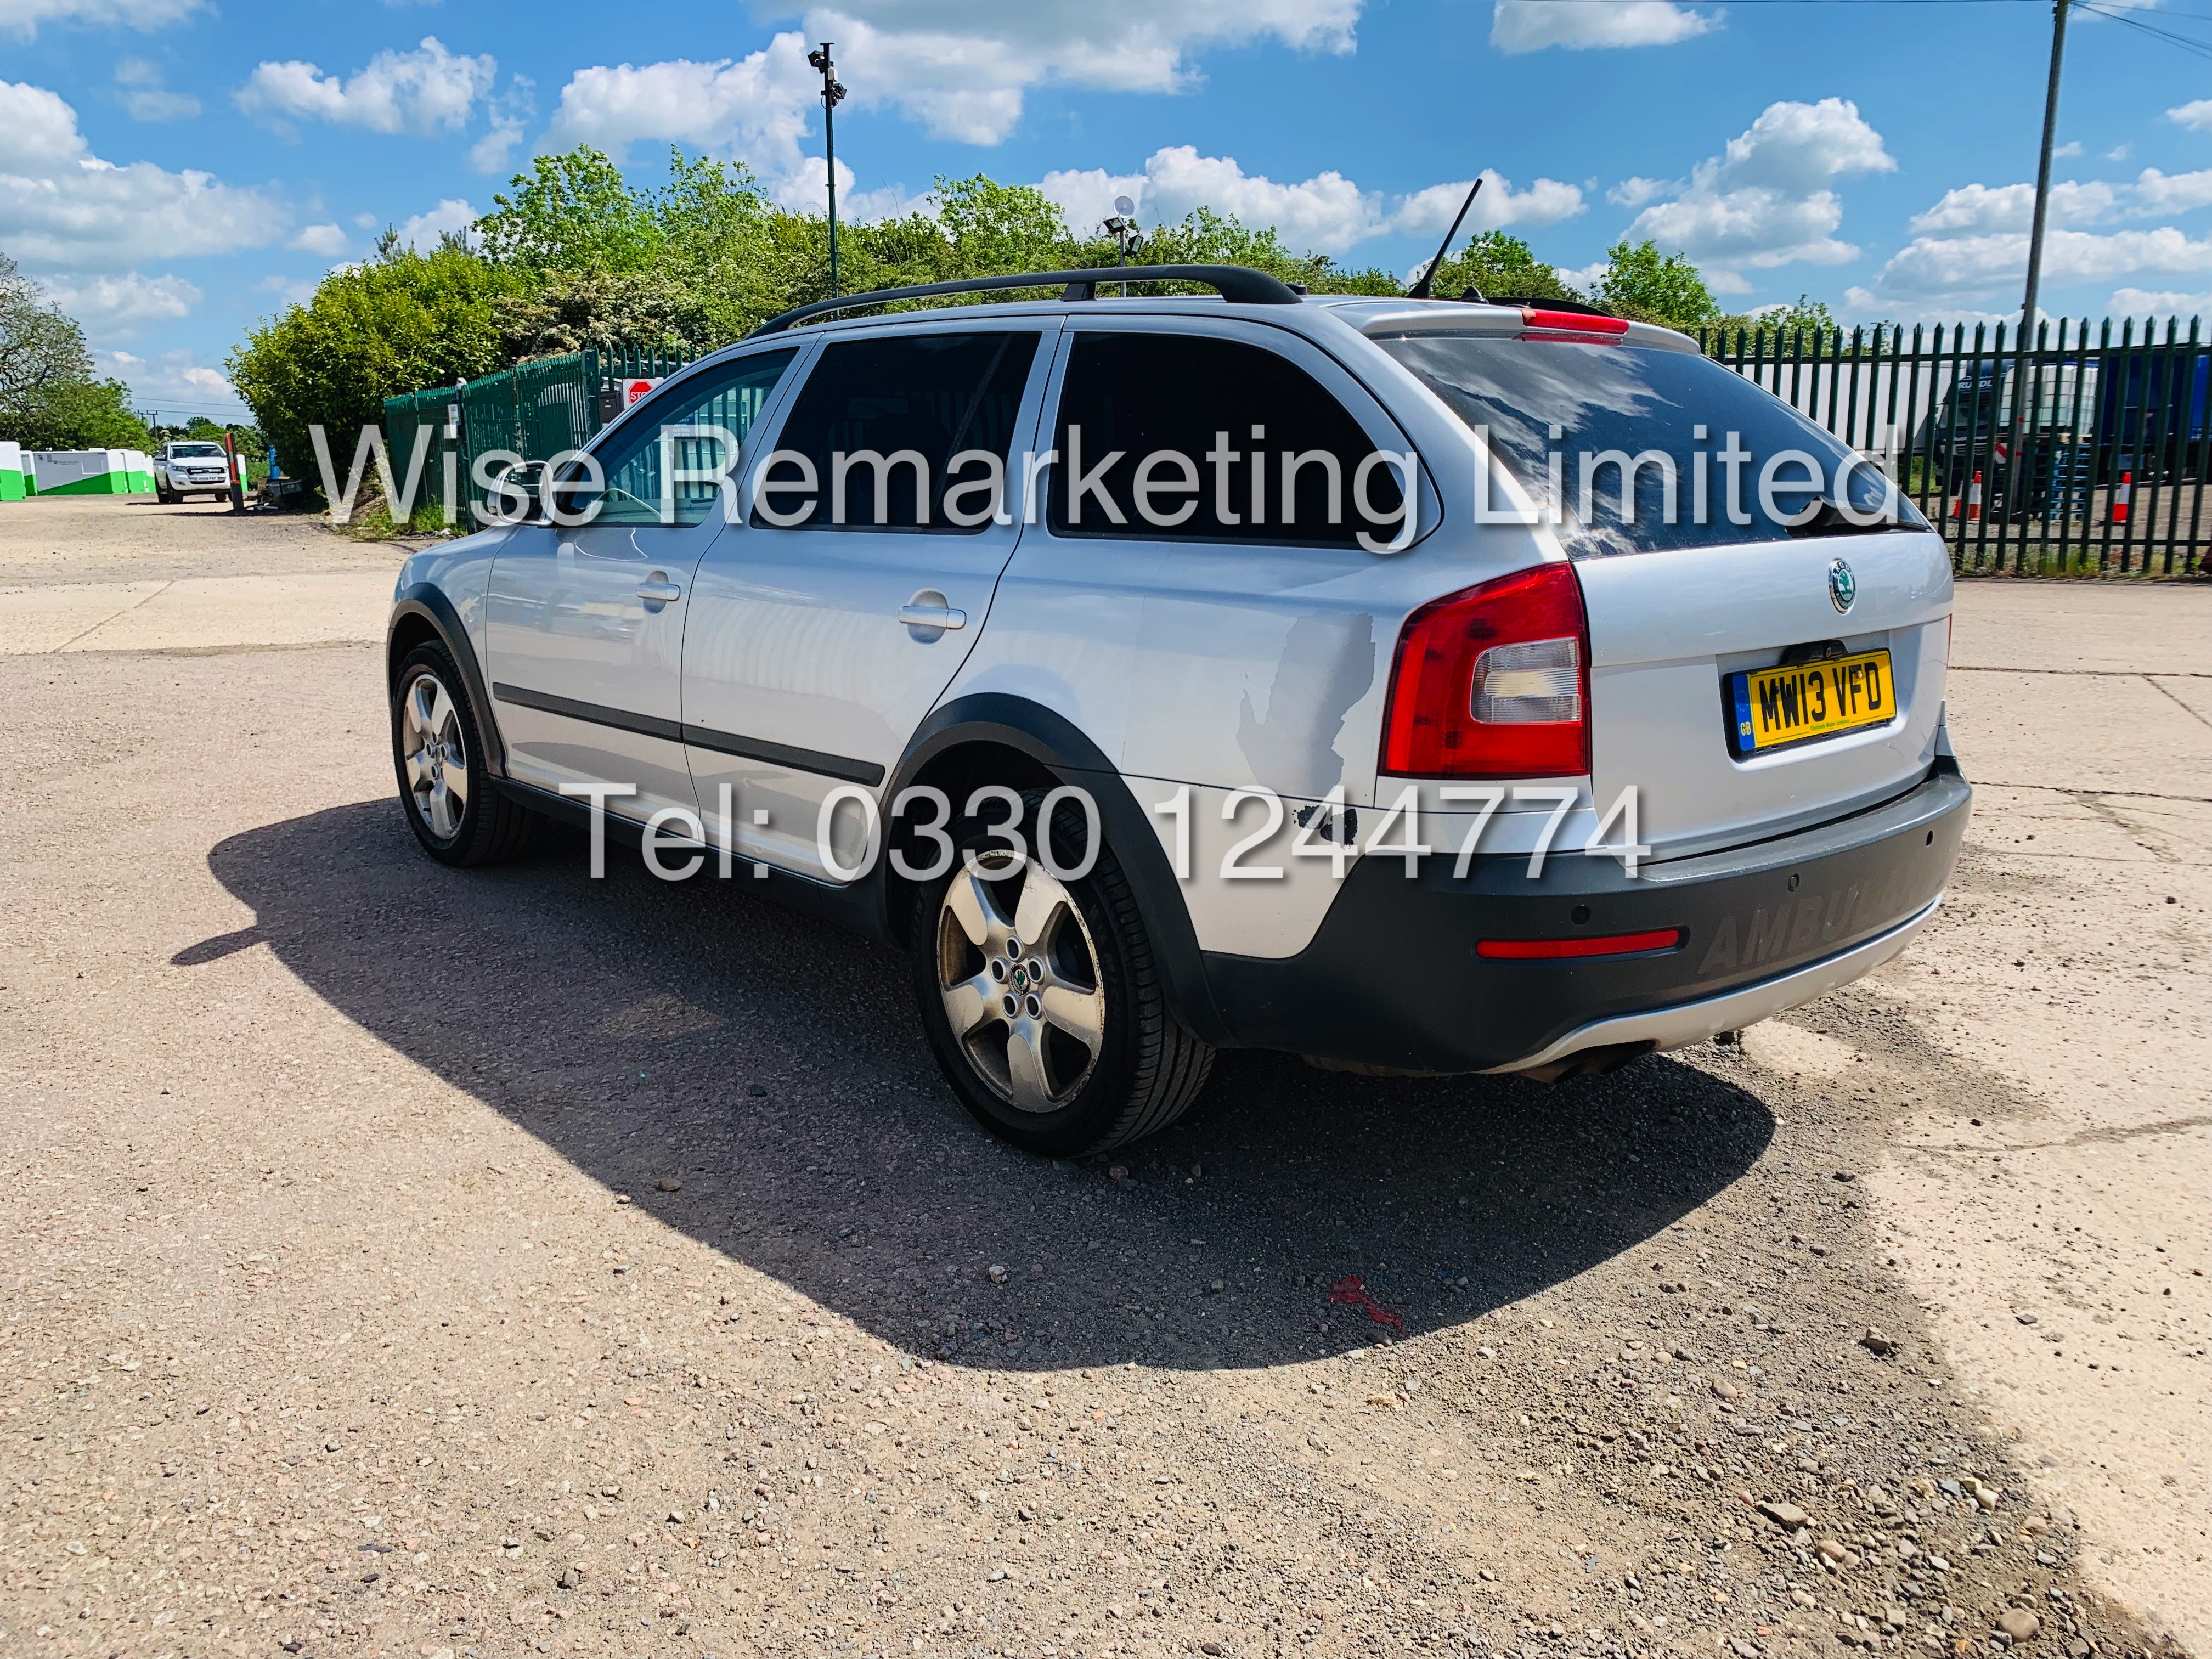 SKODA OCTAVIA (SCOUT) 2.0tdi DSG AUTOMATIC ESTATE / 2013 / 1 OWNER WITH FULL HISTORY / 140BHP / 4x4 - Image 6 of 14